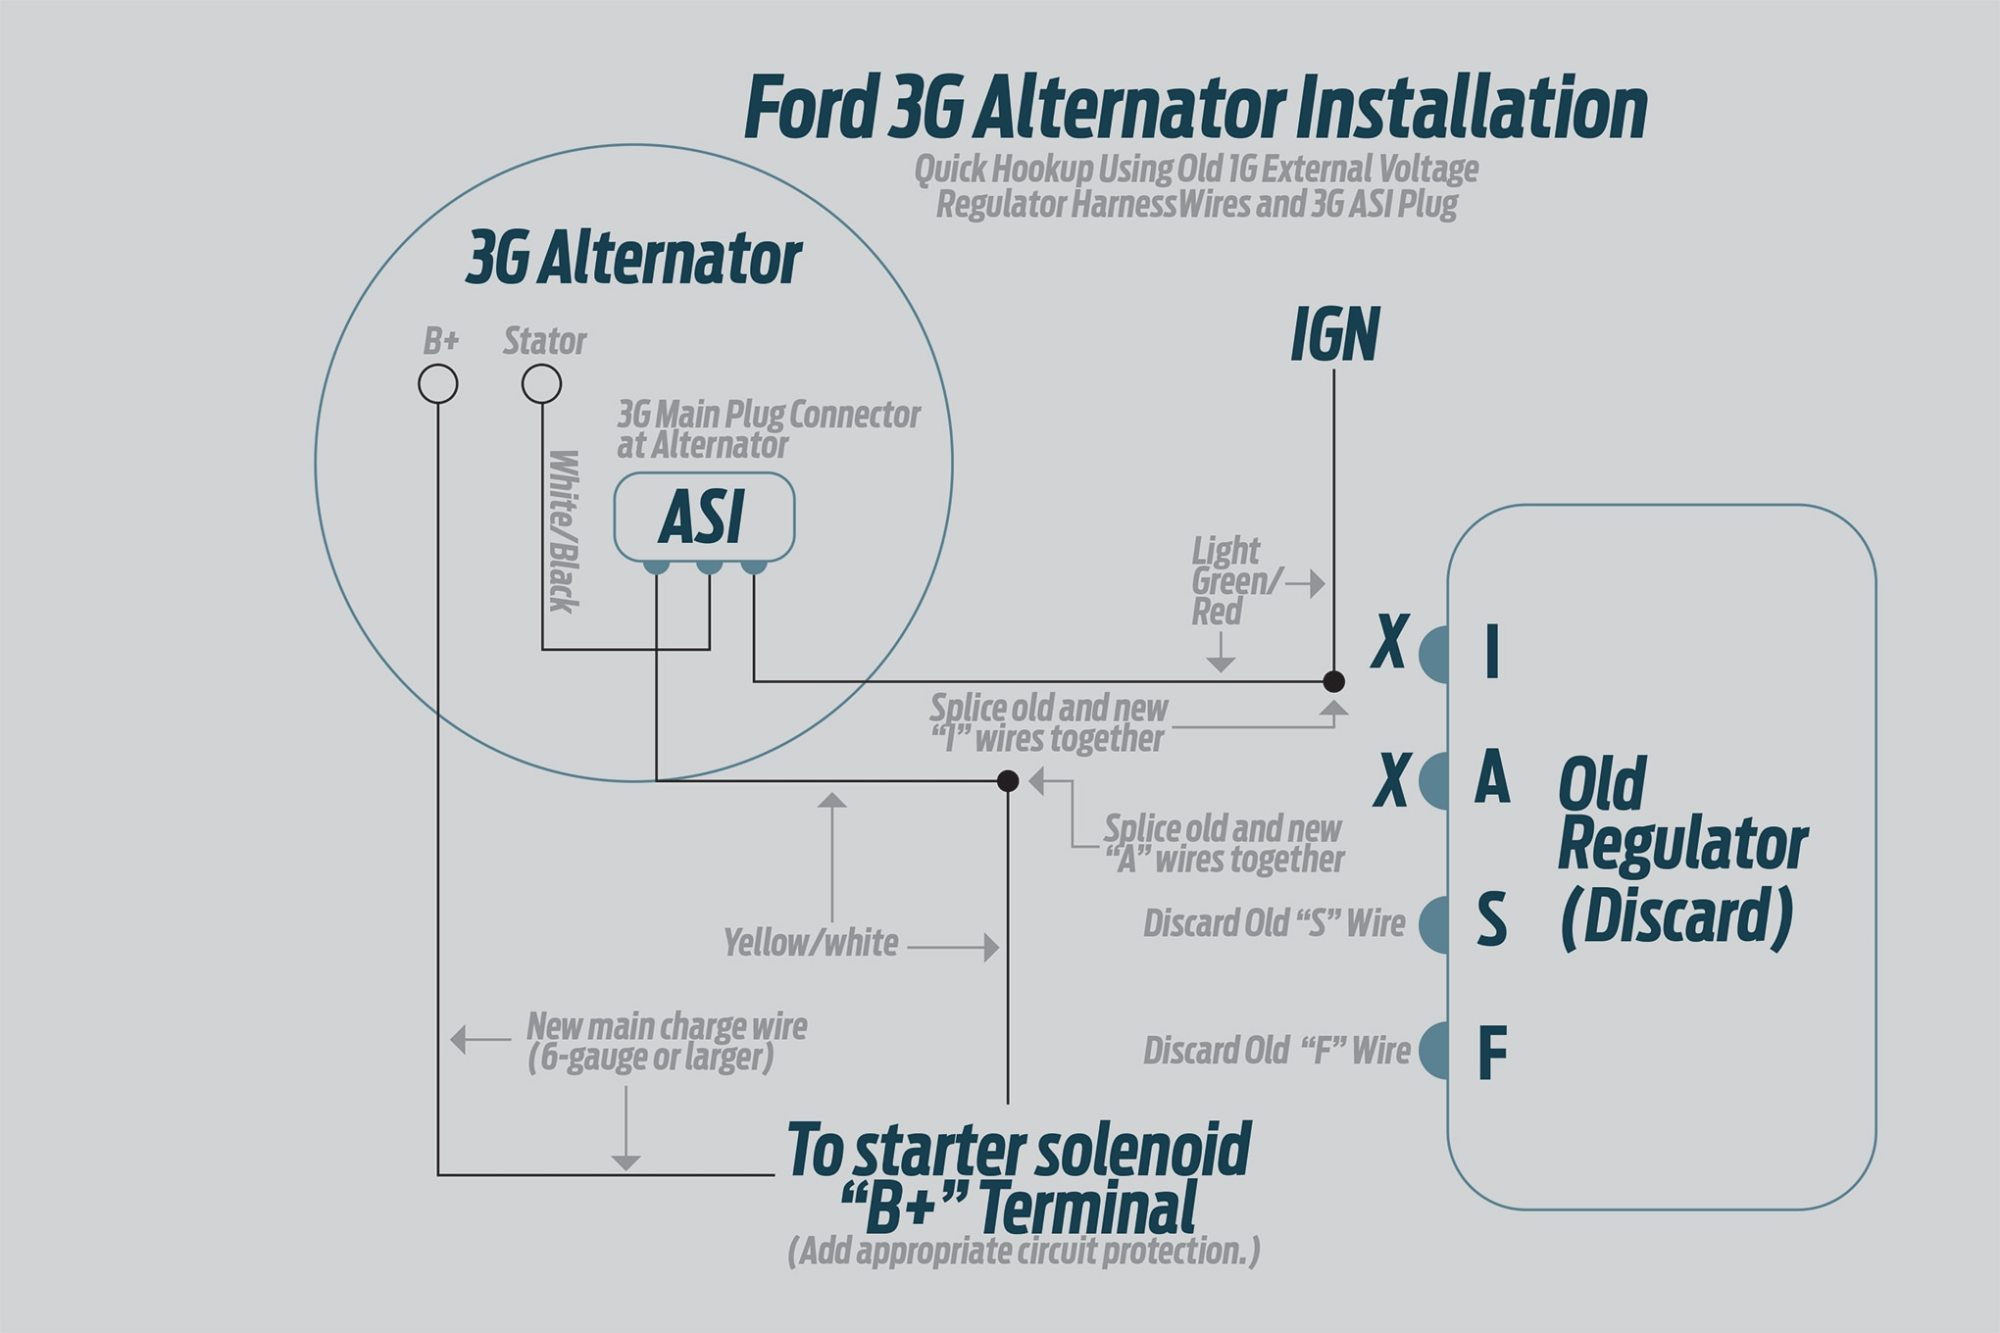 hight resolution of ford alternator wiring hook up wiring diagram toolbox ford alternator wiring hook up wiring diagram operations